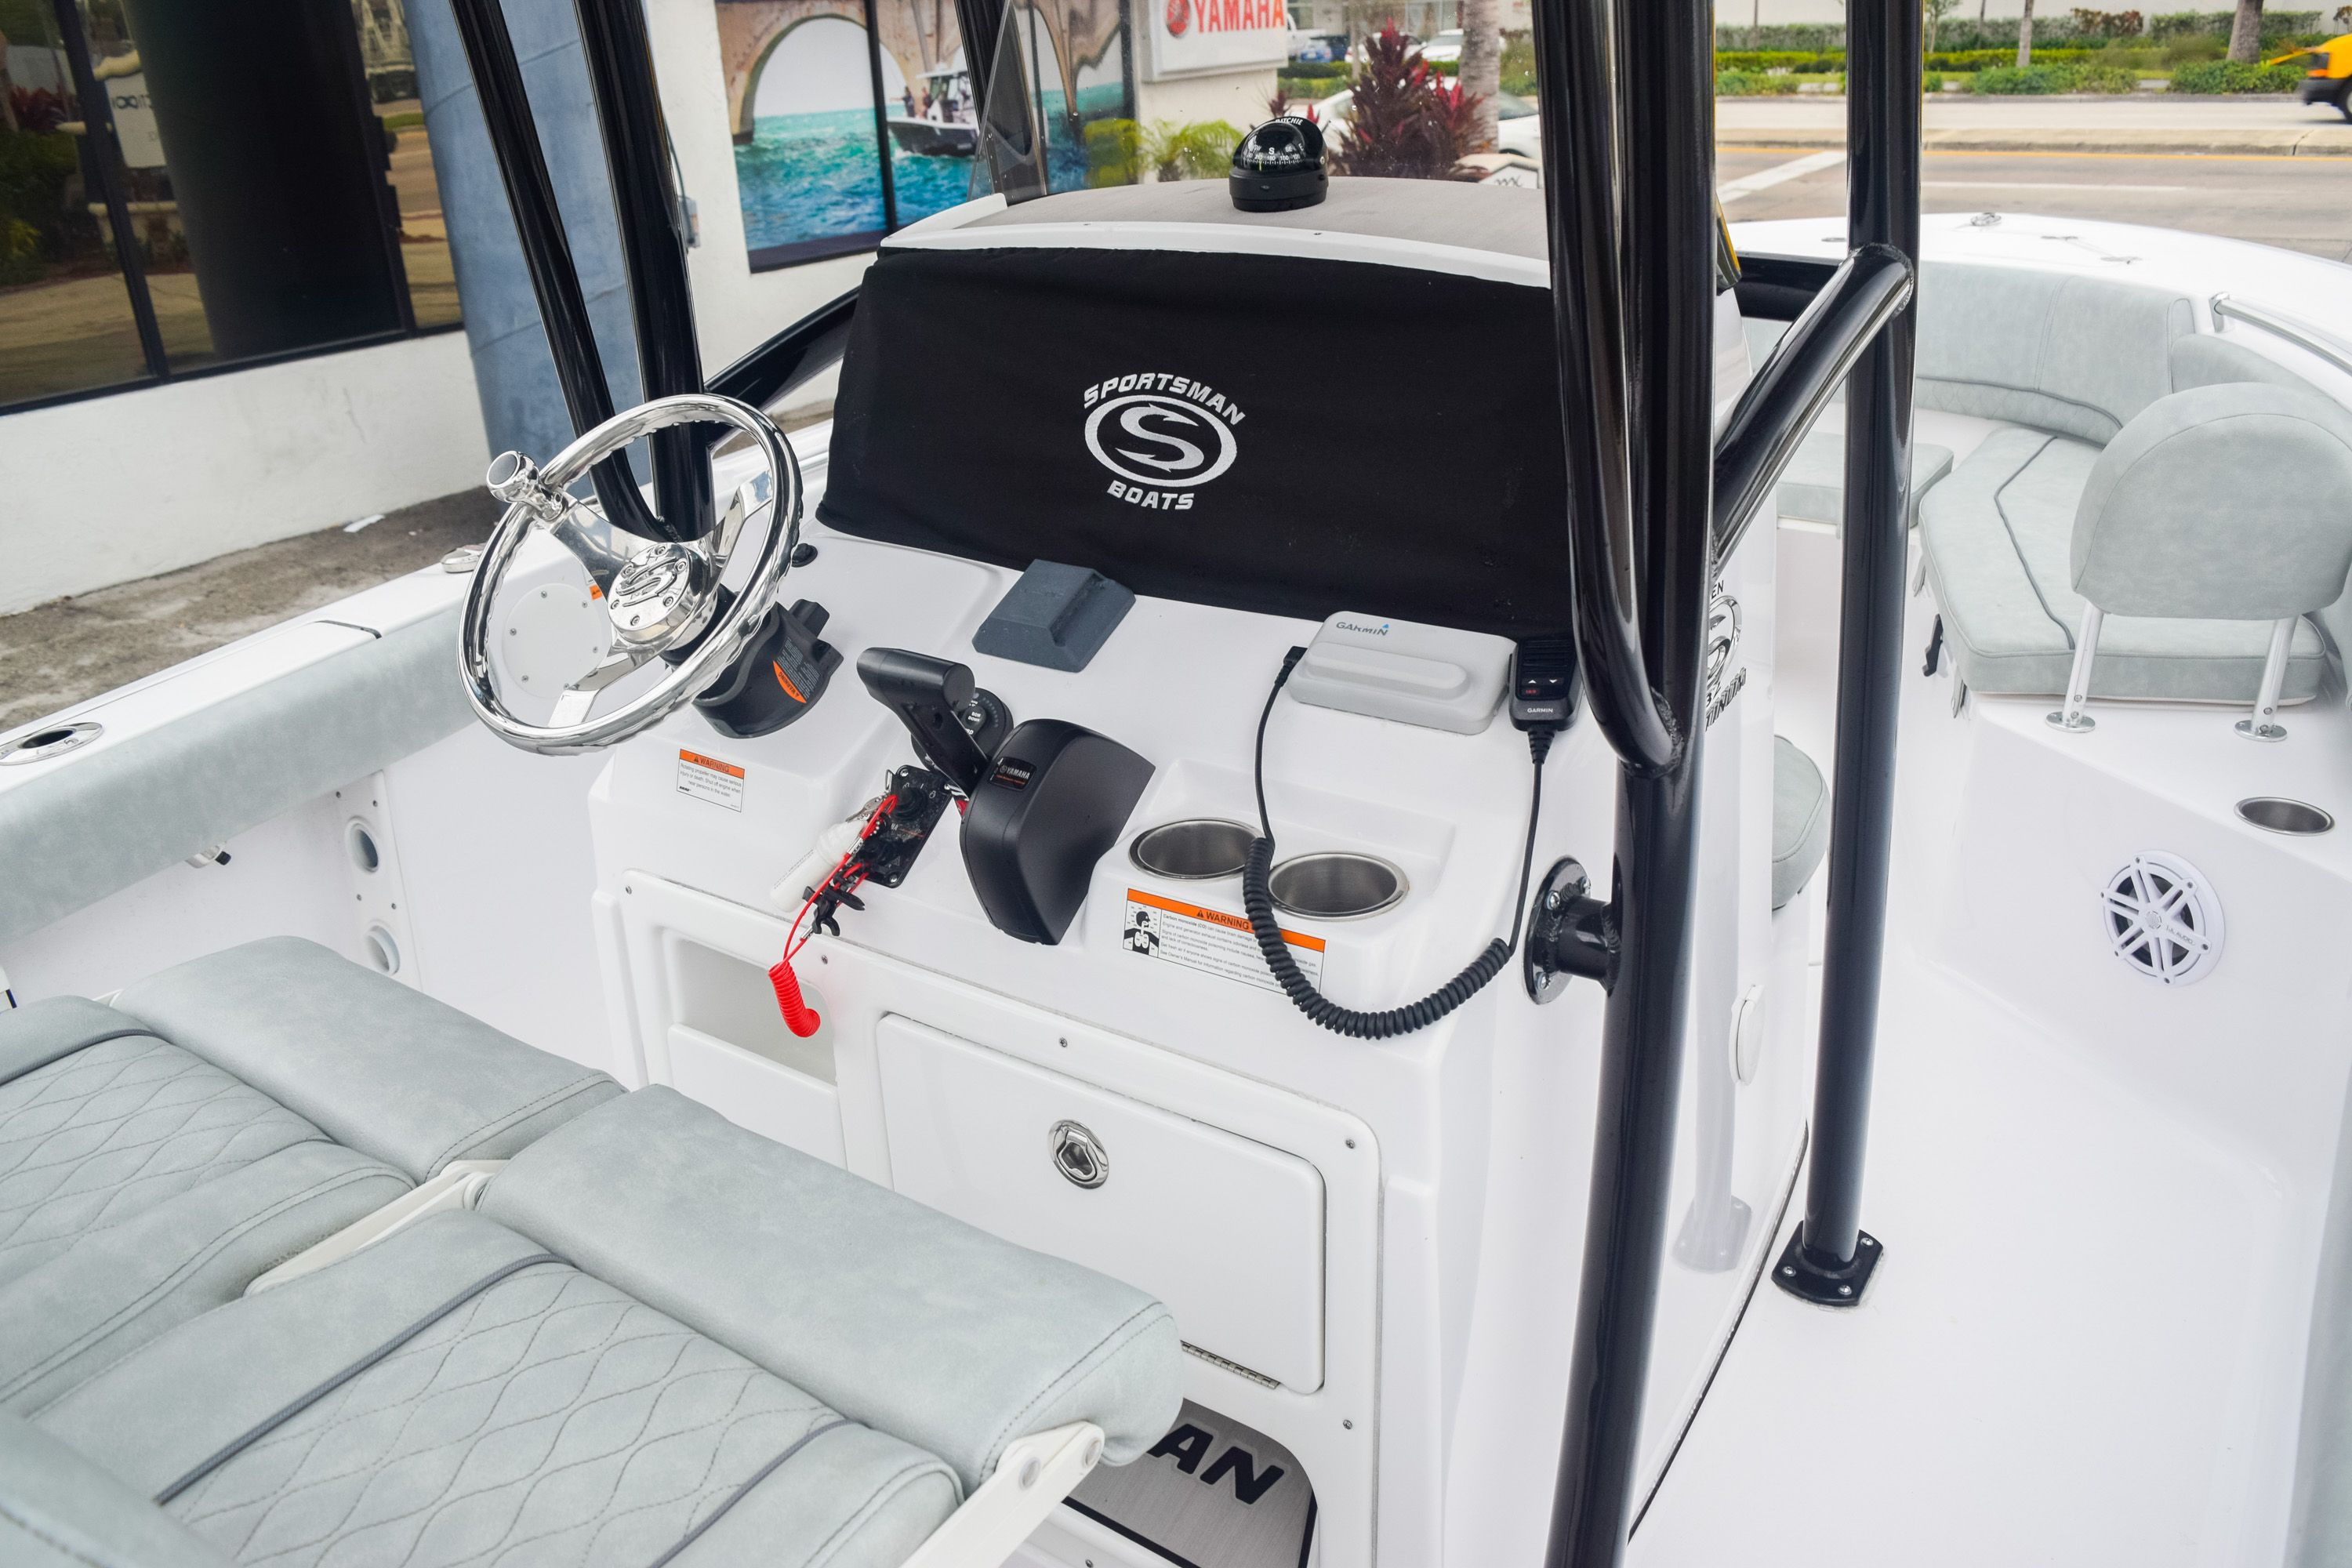 Thumbnail 17 for Used 2019 Sportsman Open 232 Center Console boat for sale in Fort Lauderdale, FL